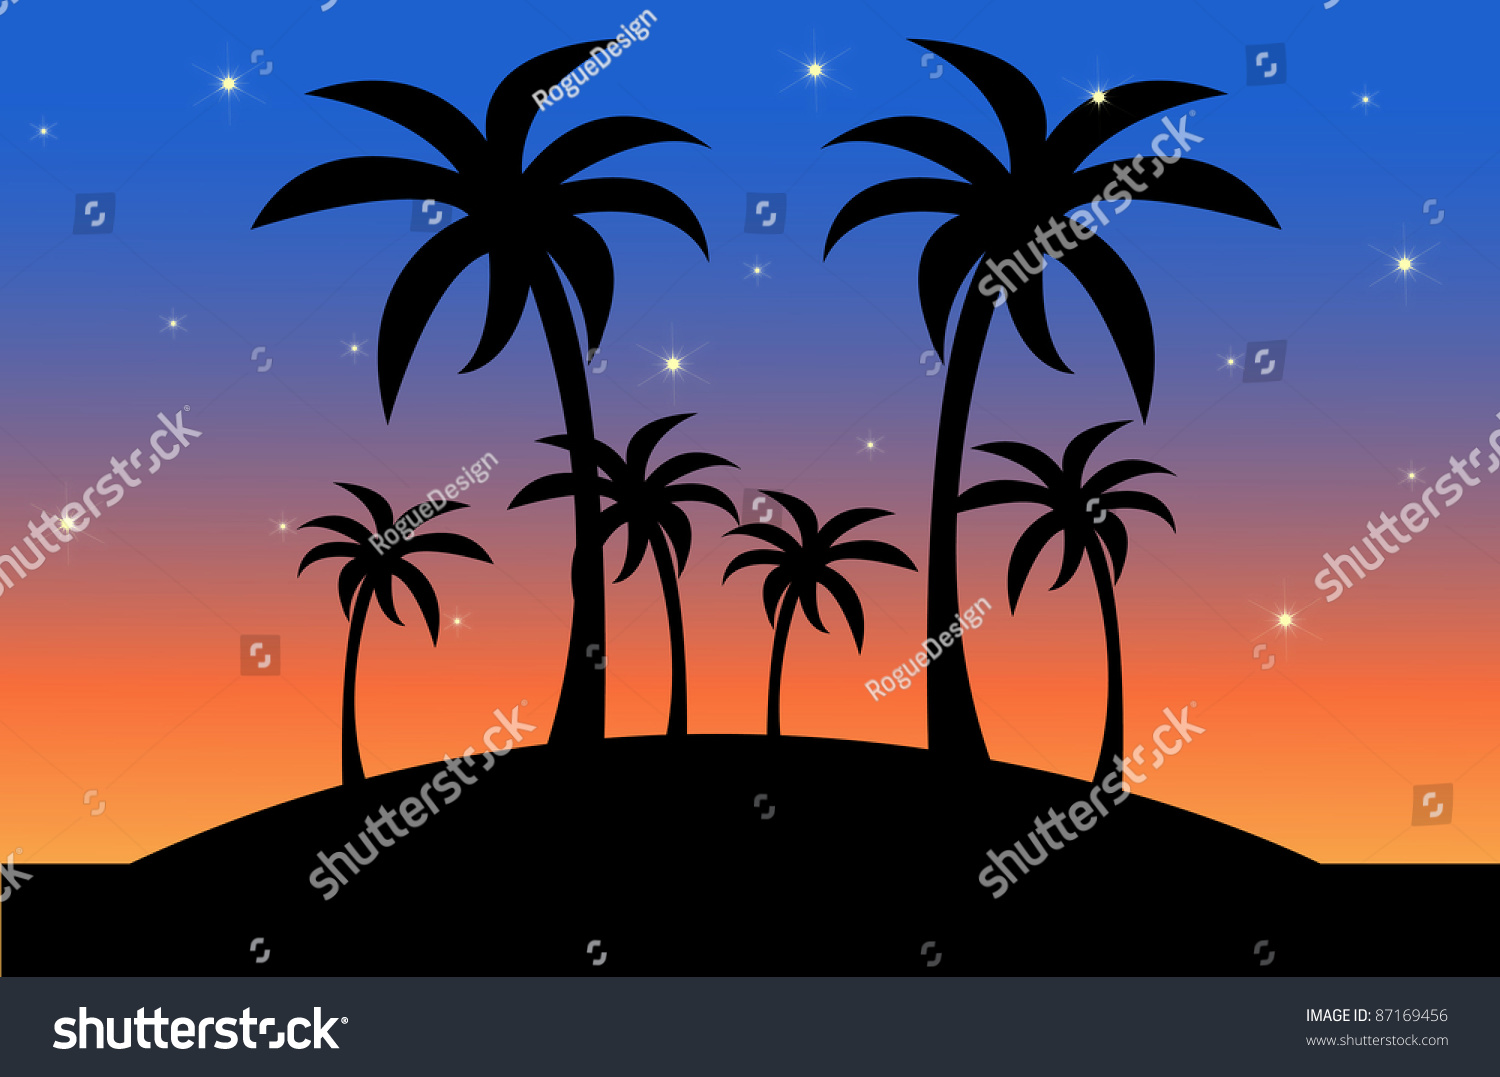 Clip Art Illustration Of The Silhouette Palm Trees On A Tropical Island At Sunset